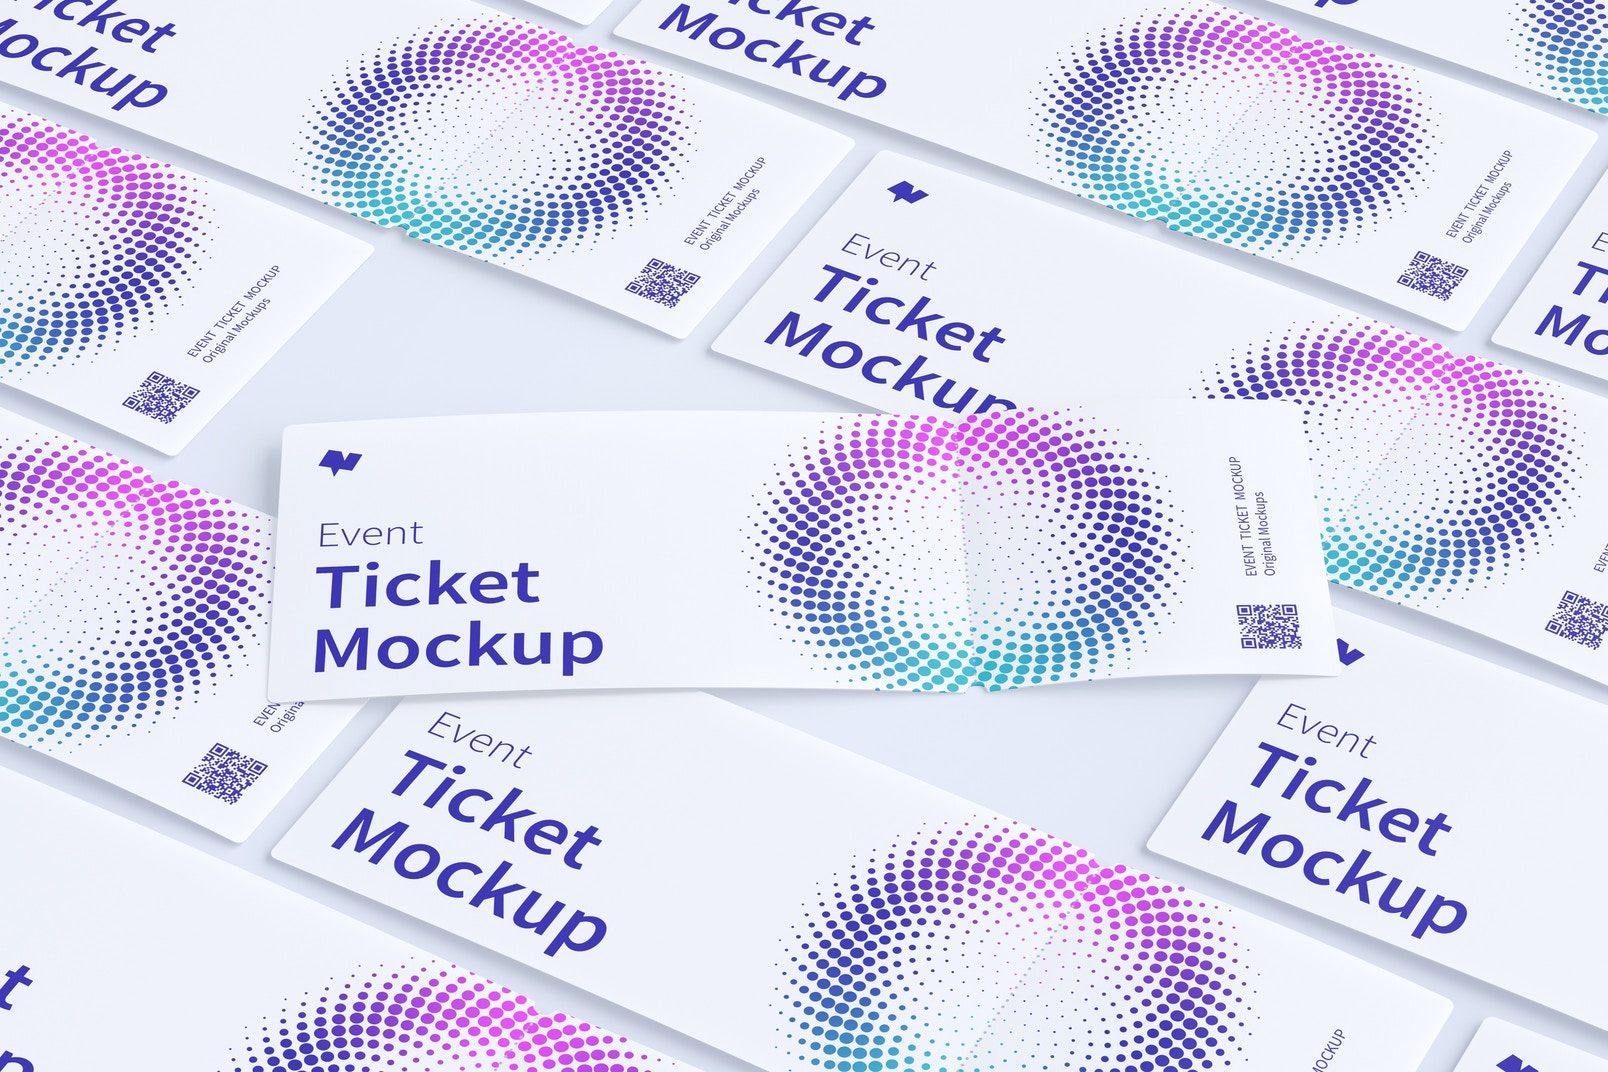 Event Tickets Mockup 02